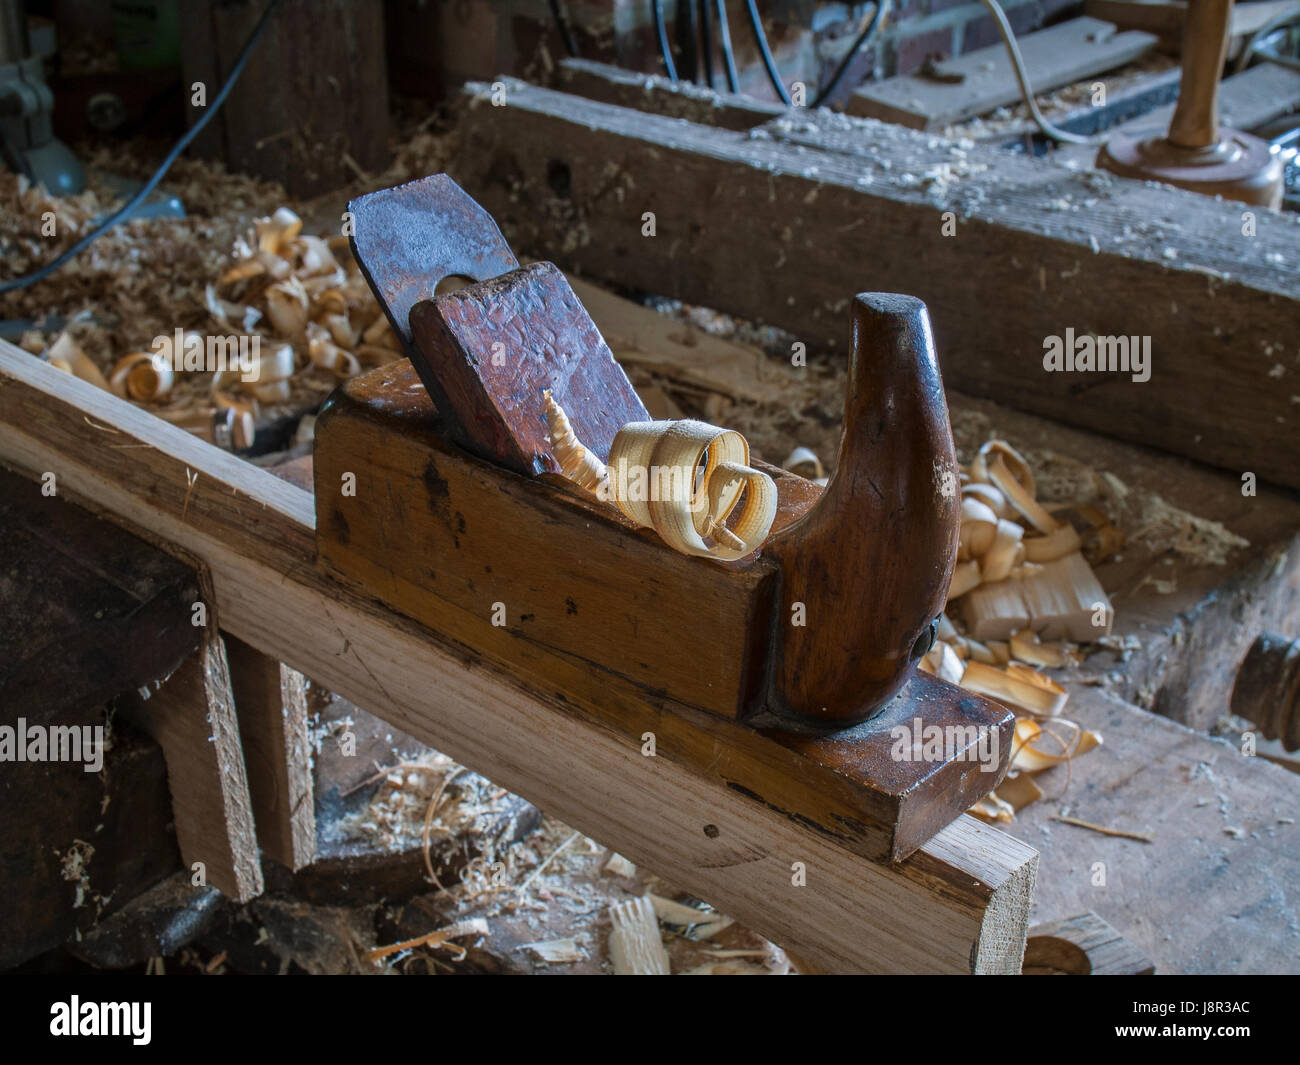 Carpenter's shop with a vice on a workpiese. - Stock Image